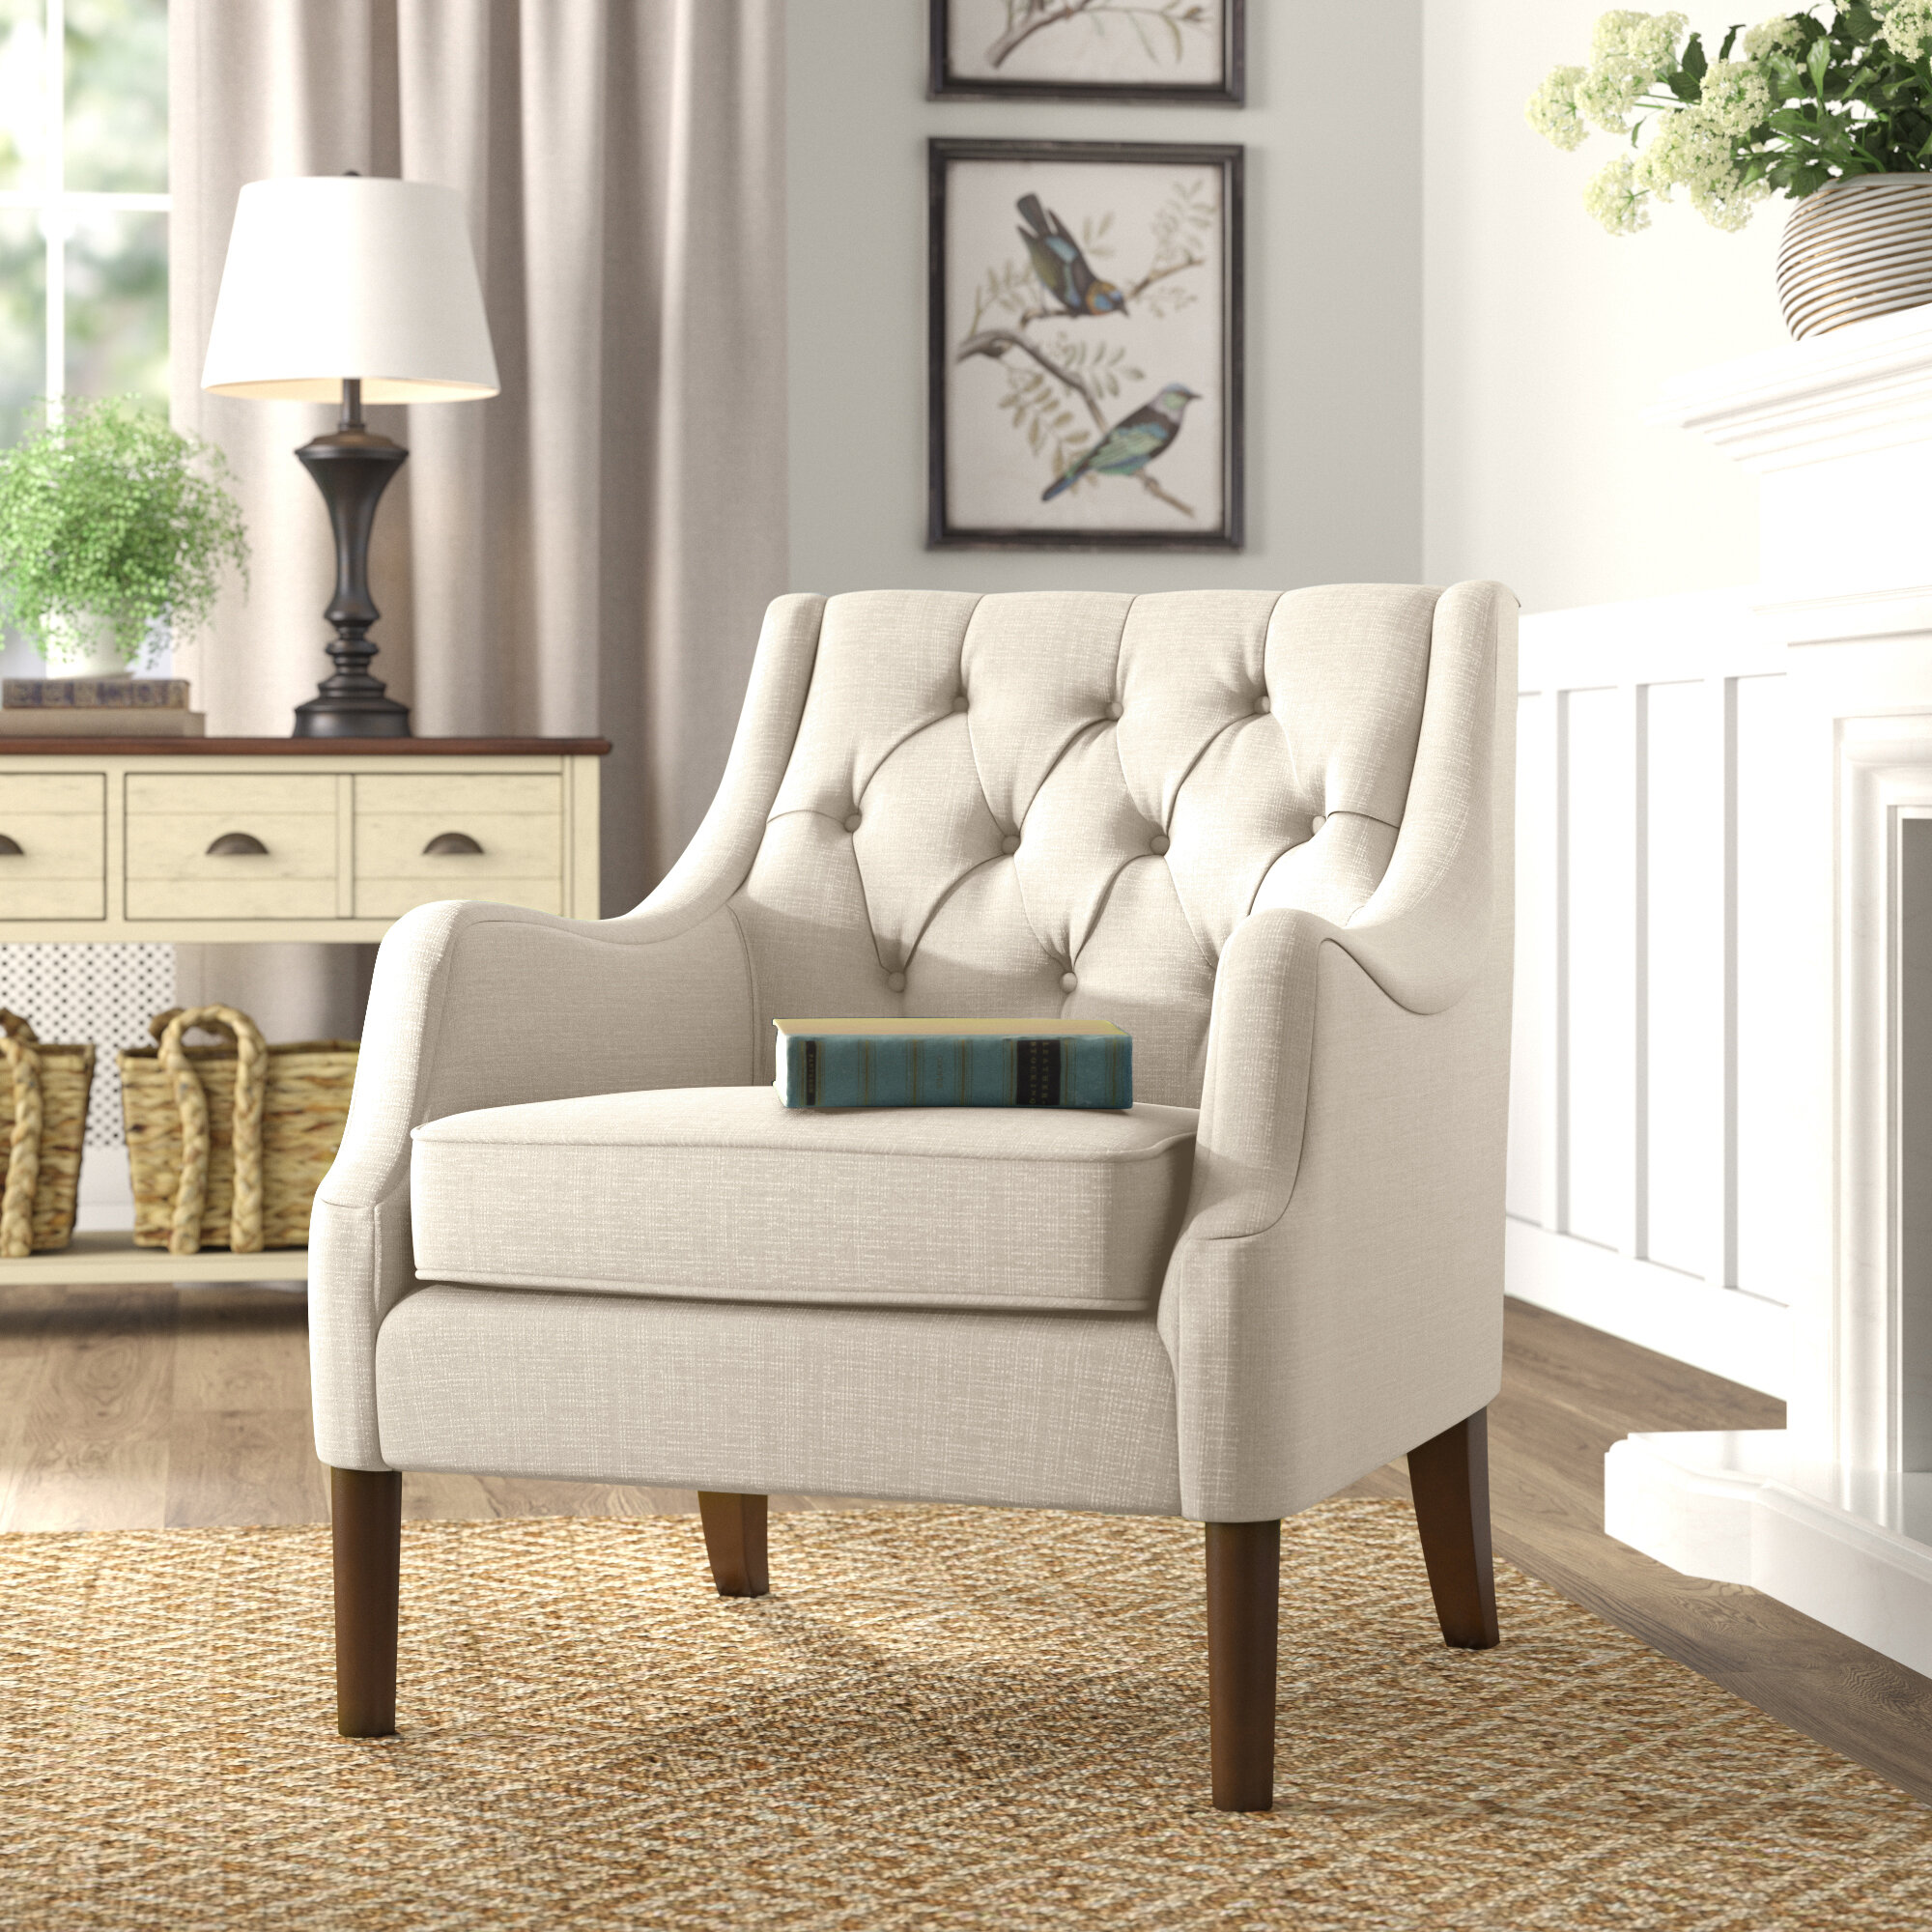 Cottage Country Accent Chairs Farmhouse Armchairs Free Shipping Over 35 Wayfair